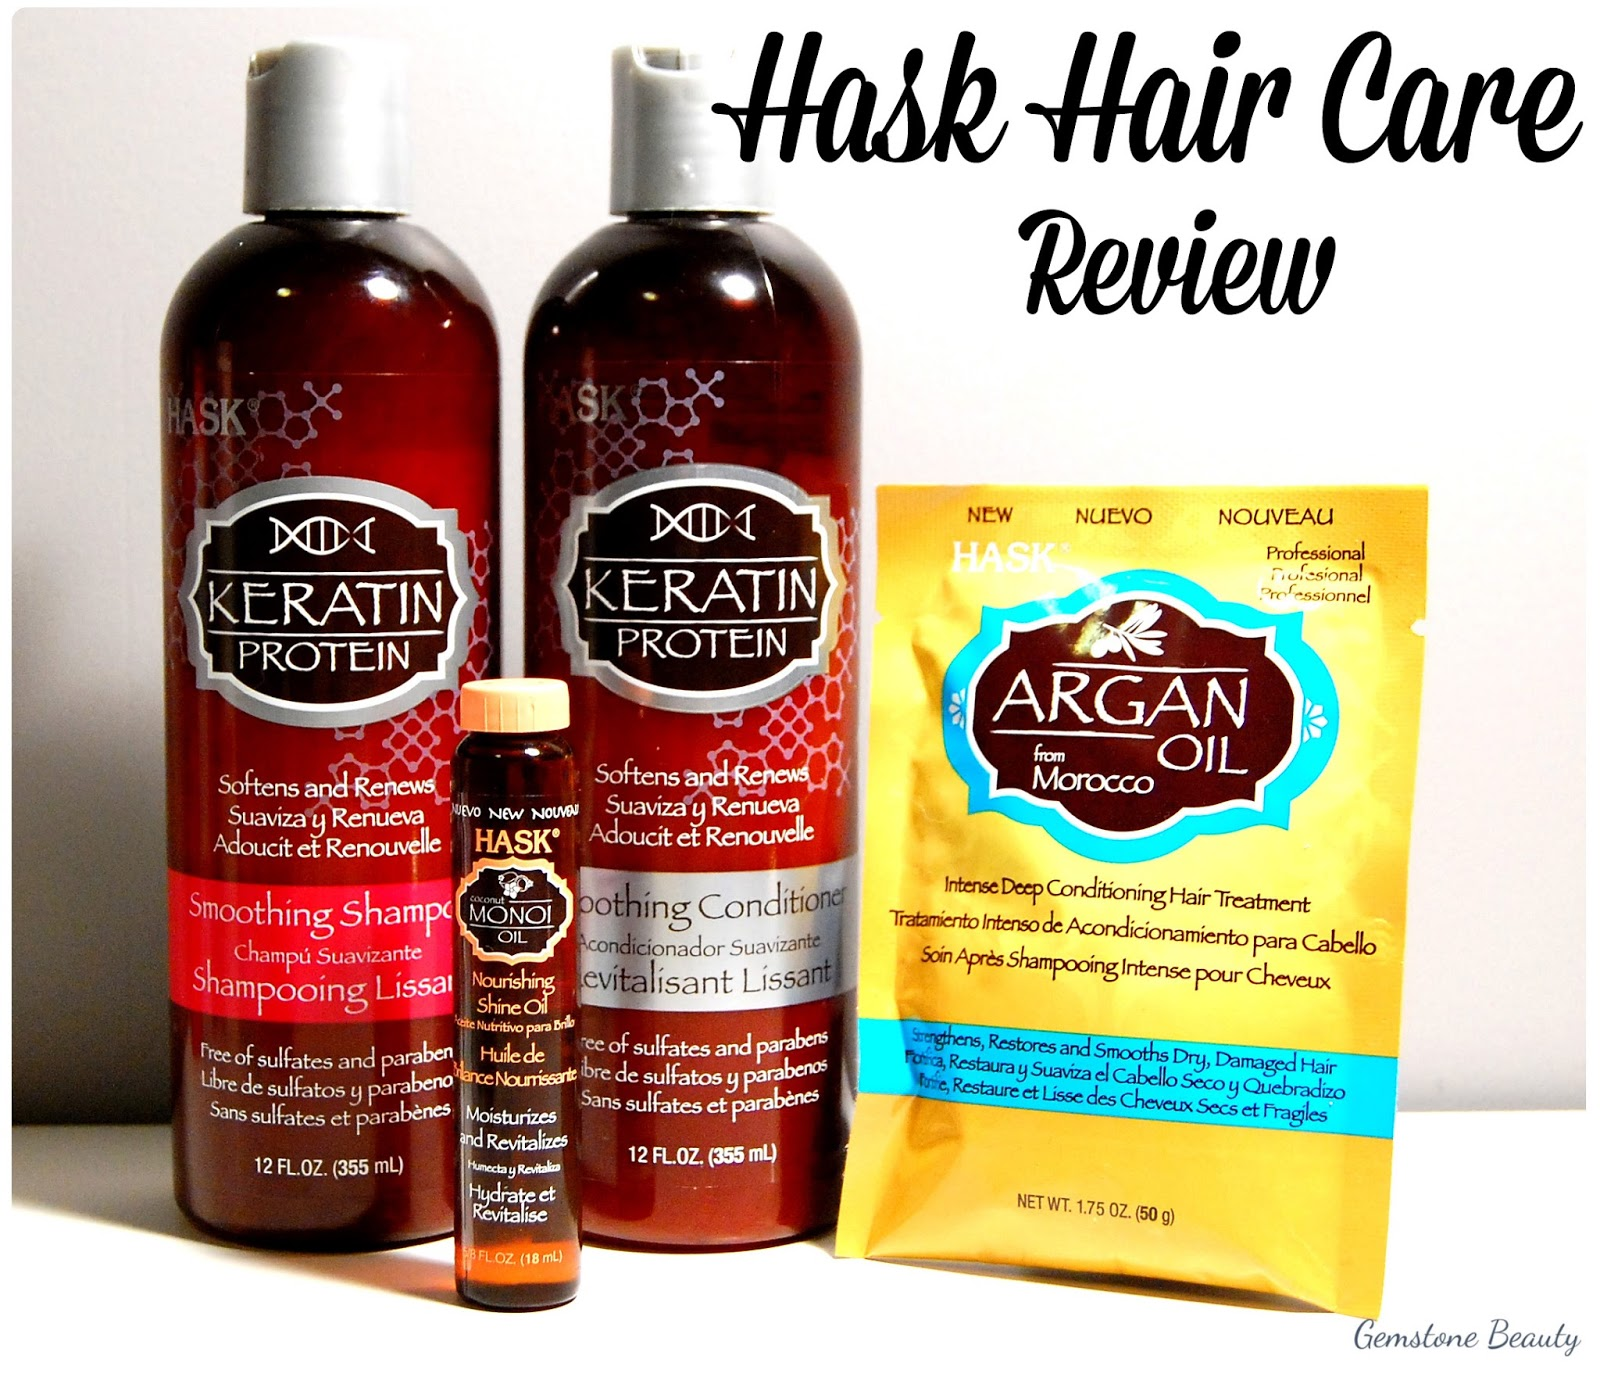 When hair products reviews